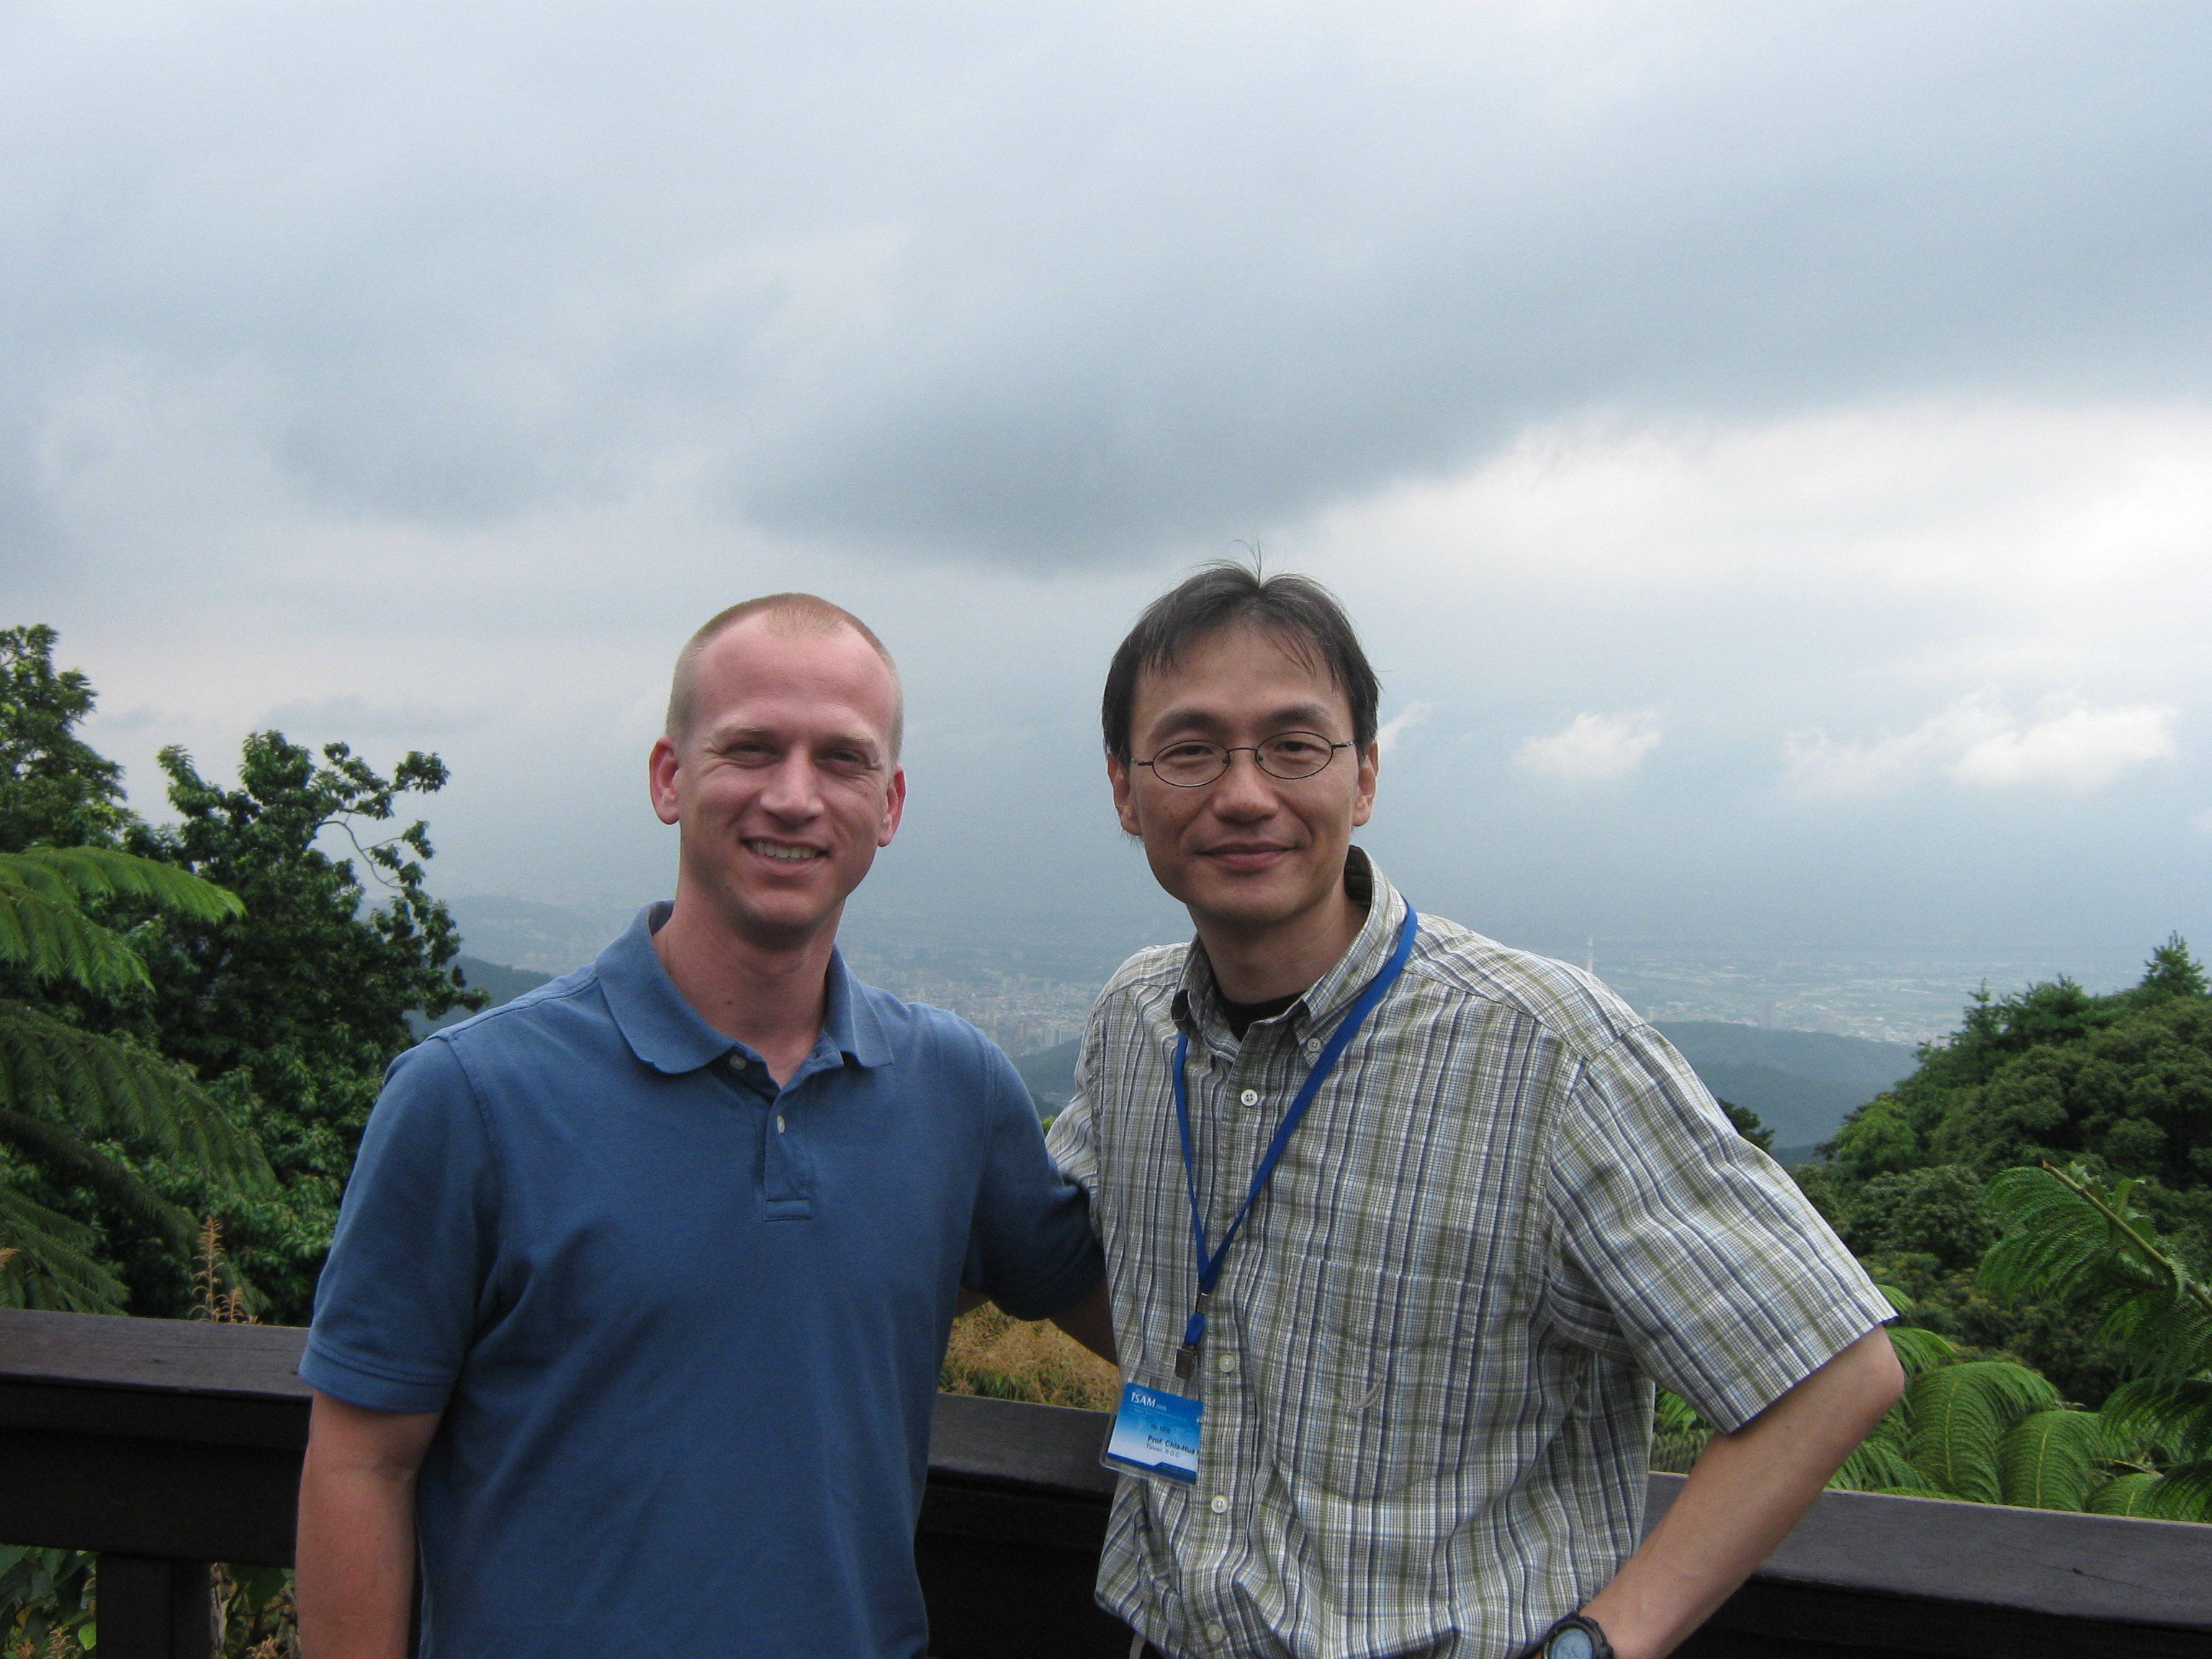 Dr. Kuo and me on mountain overlooking Taipei